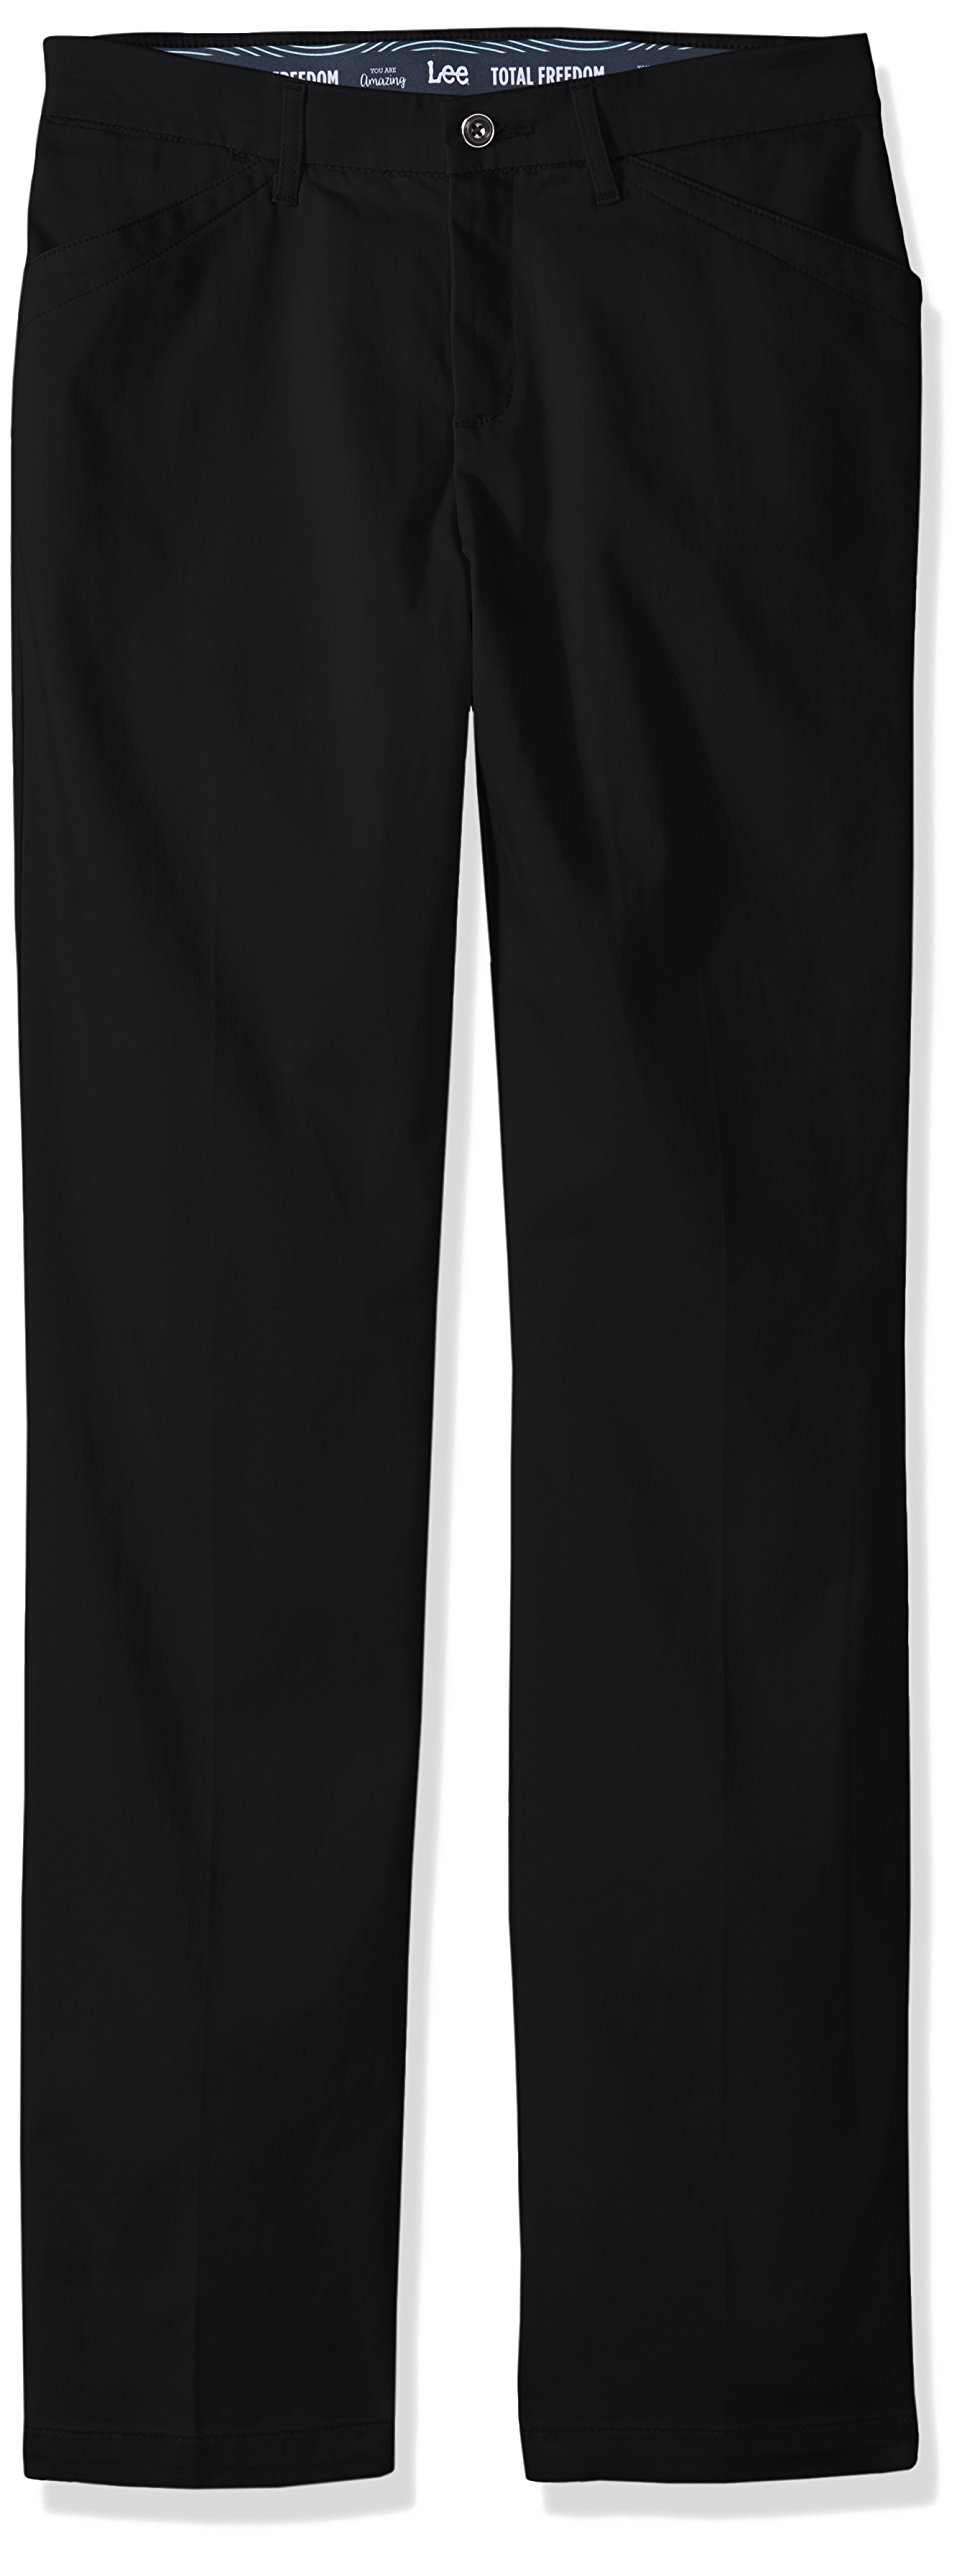 Lee Women's Size Tall Motion Series Total Freedom Pant